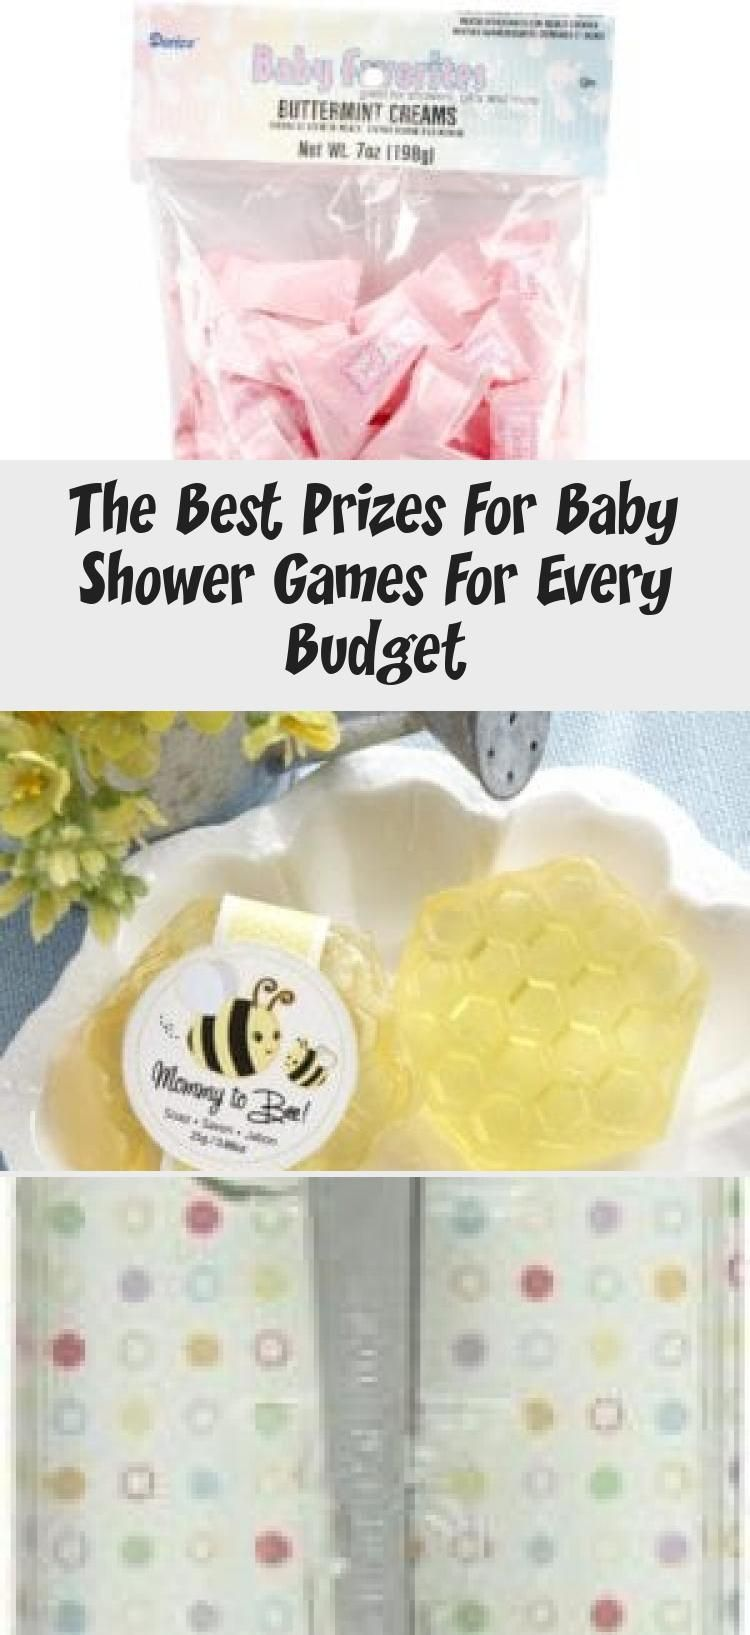 The Best Prizes For Baby Shower Games For Every Budget - health and diet fitness#baby #budget #diet...